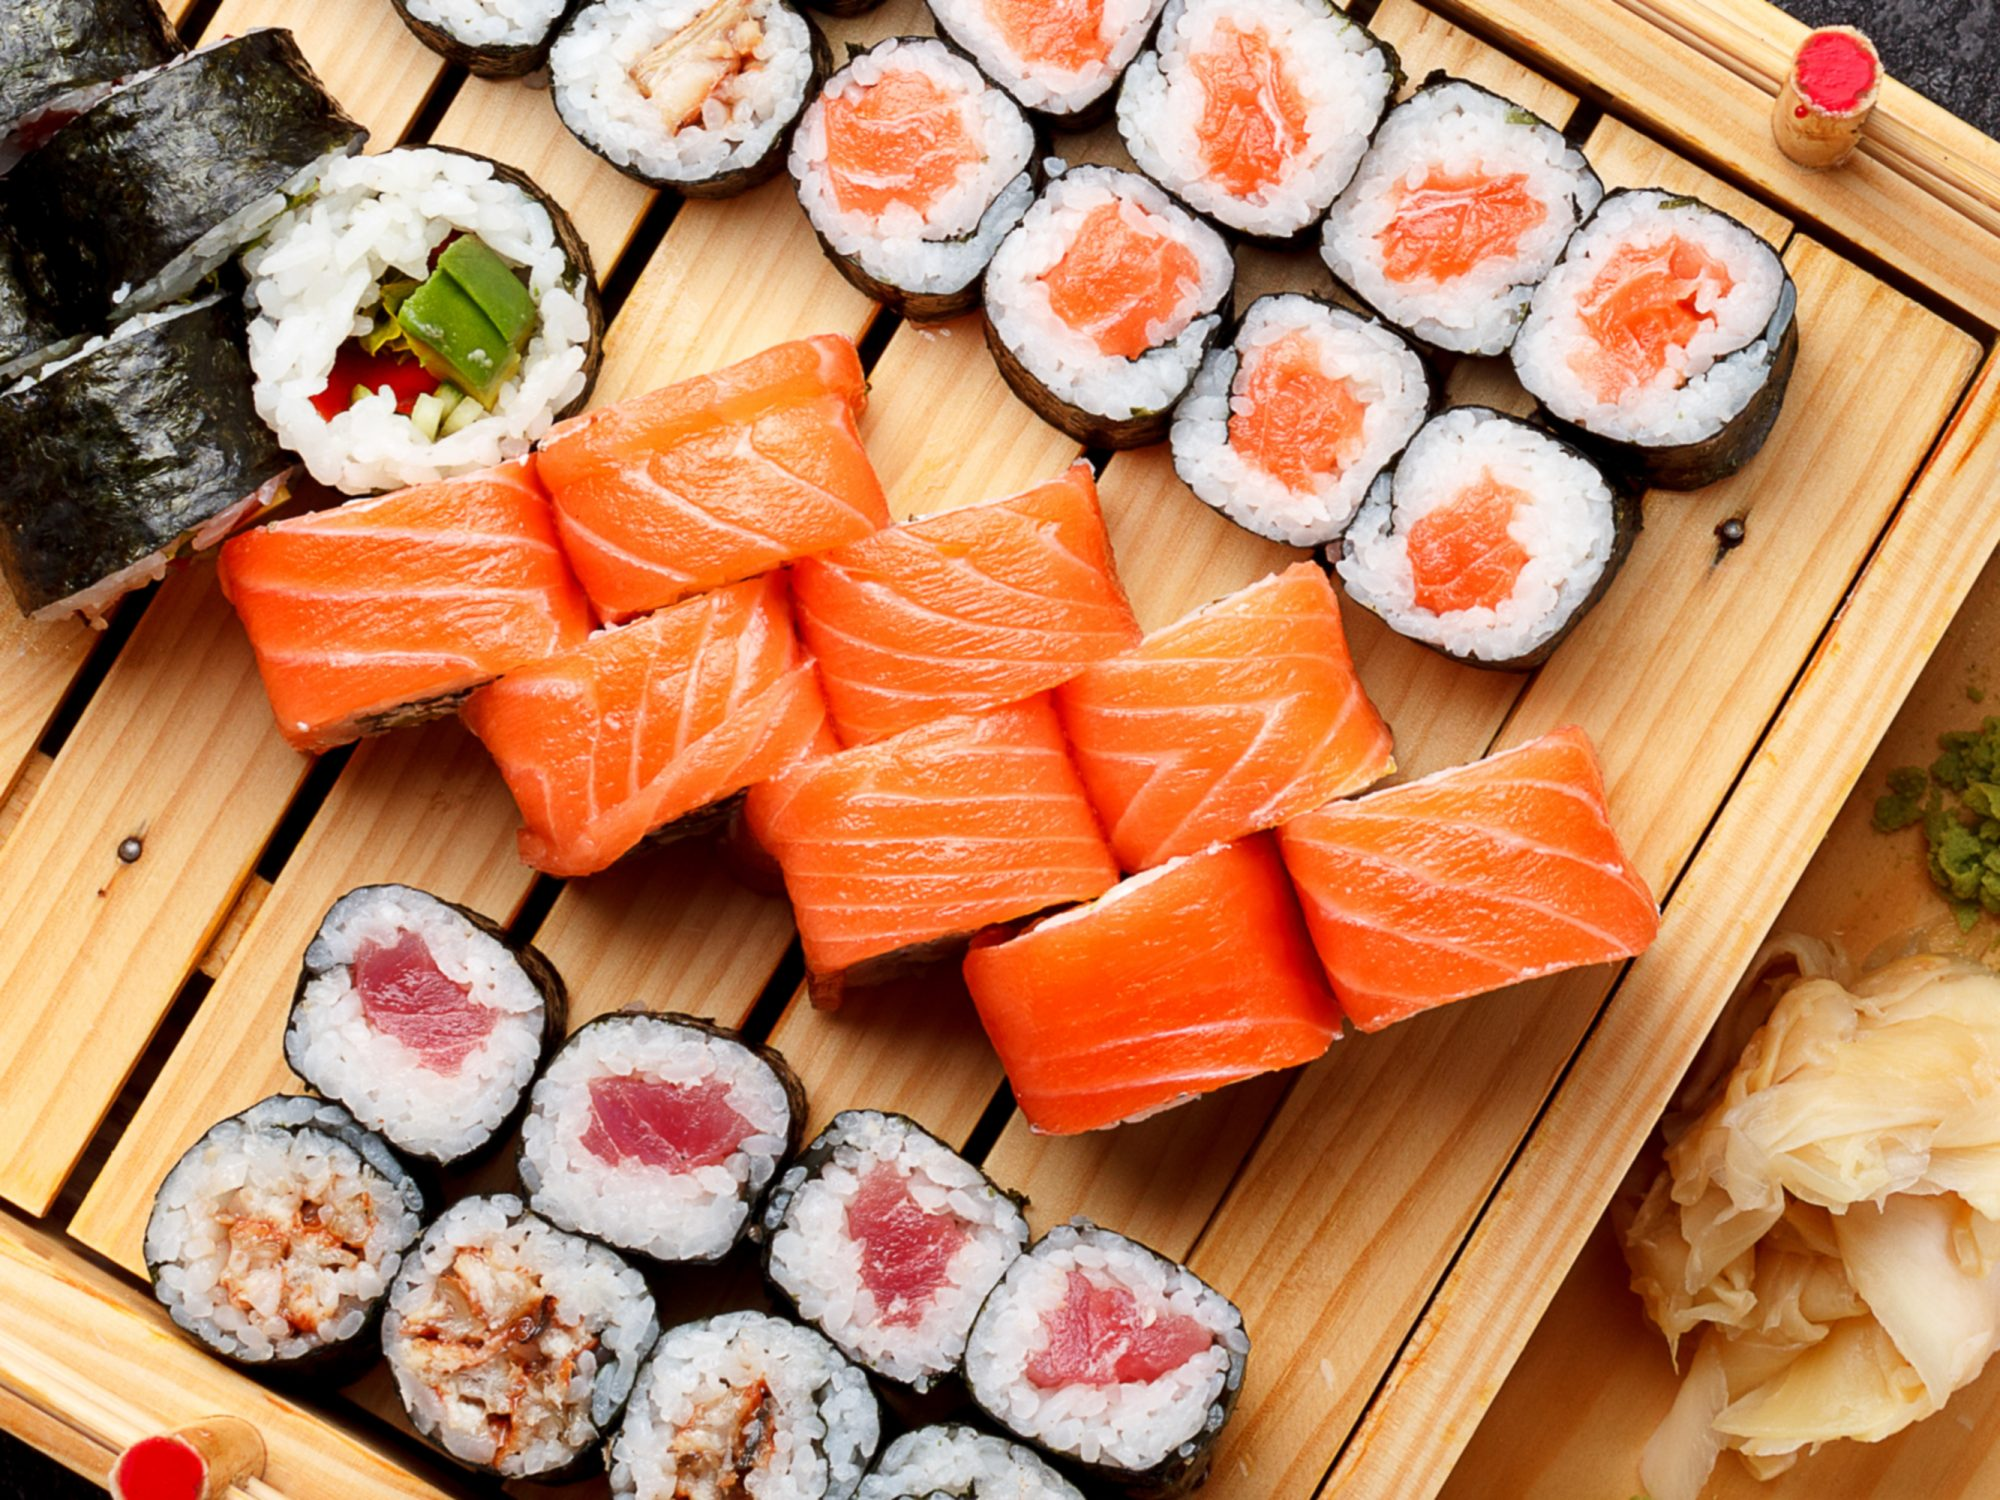 What is sushi grade fish myrecipes for Buy sushi grade fish online